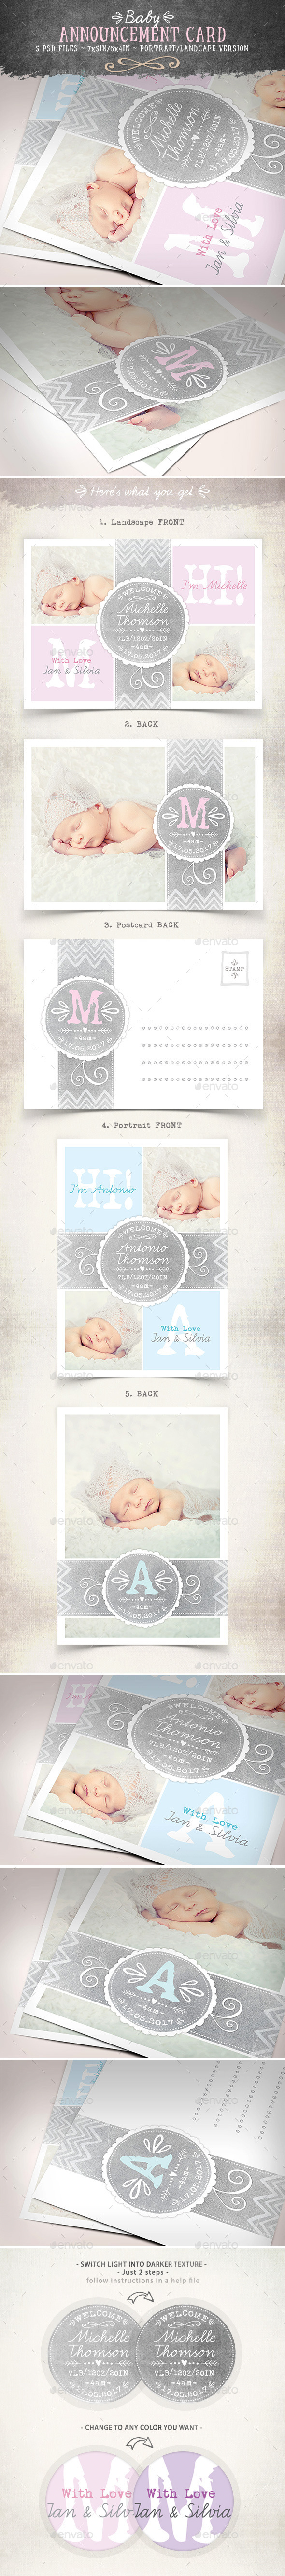 Swirls Baby Announcement Card - Vol.3 - Family Cards & Invites